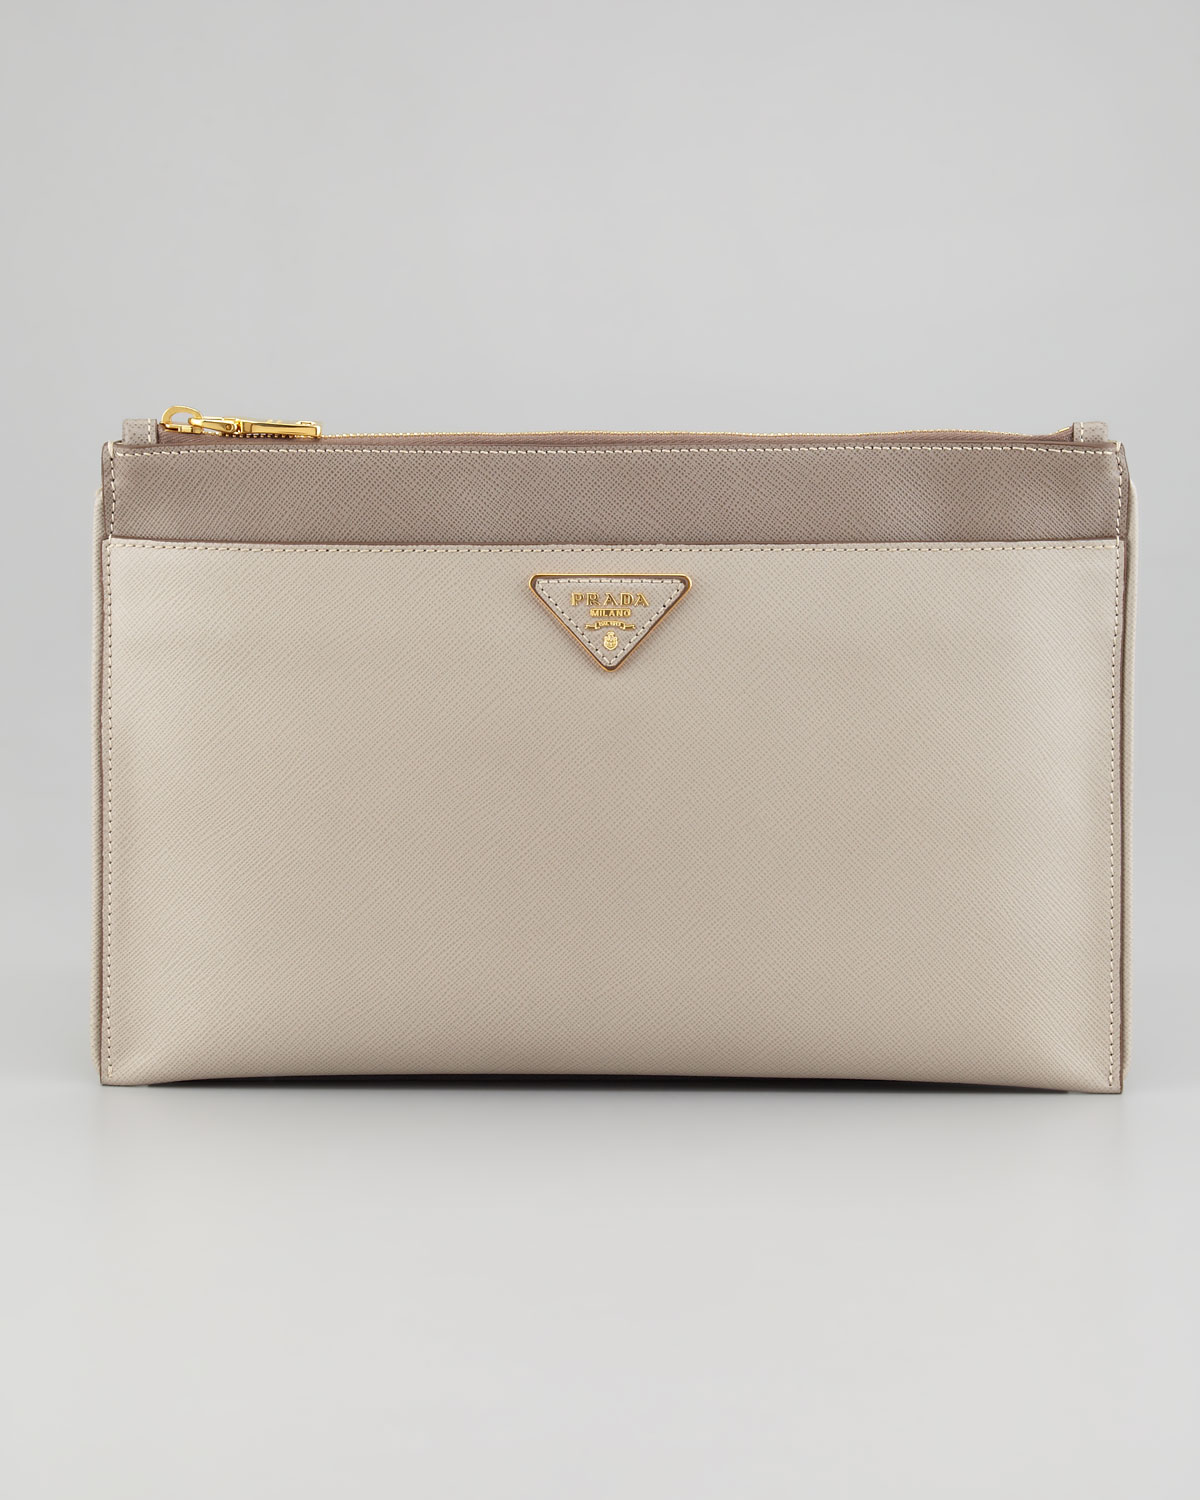 www prada bags - prada leather clutch bag